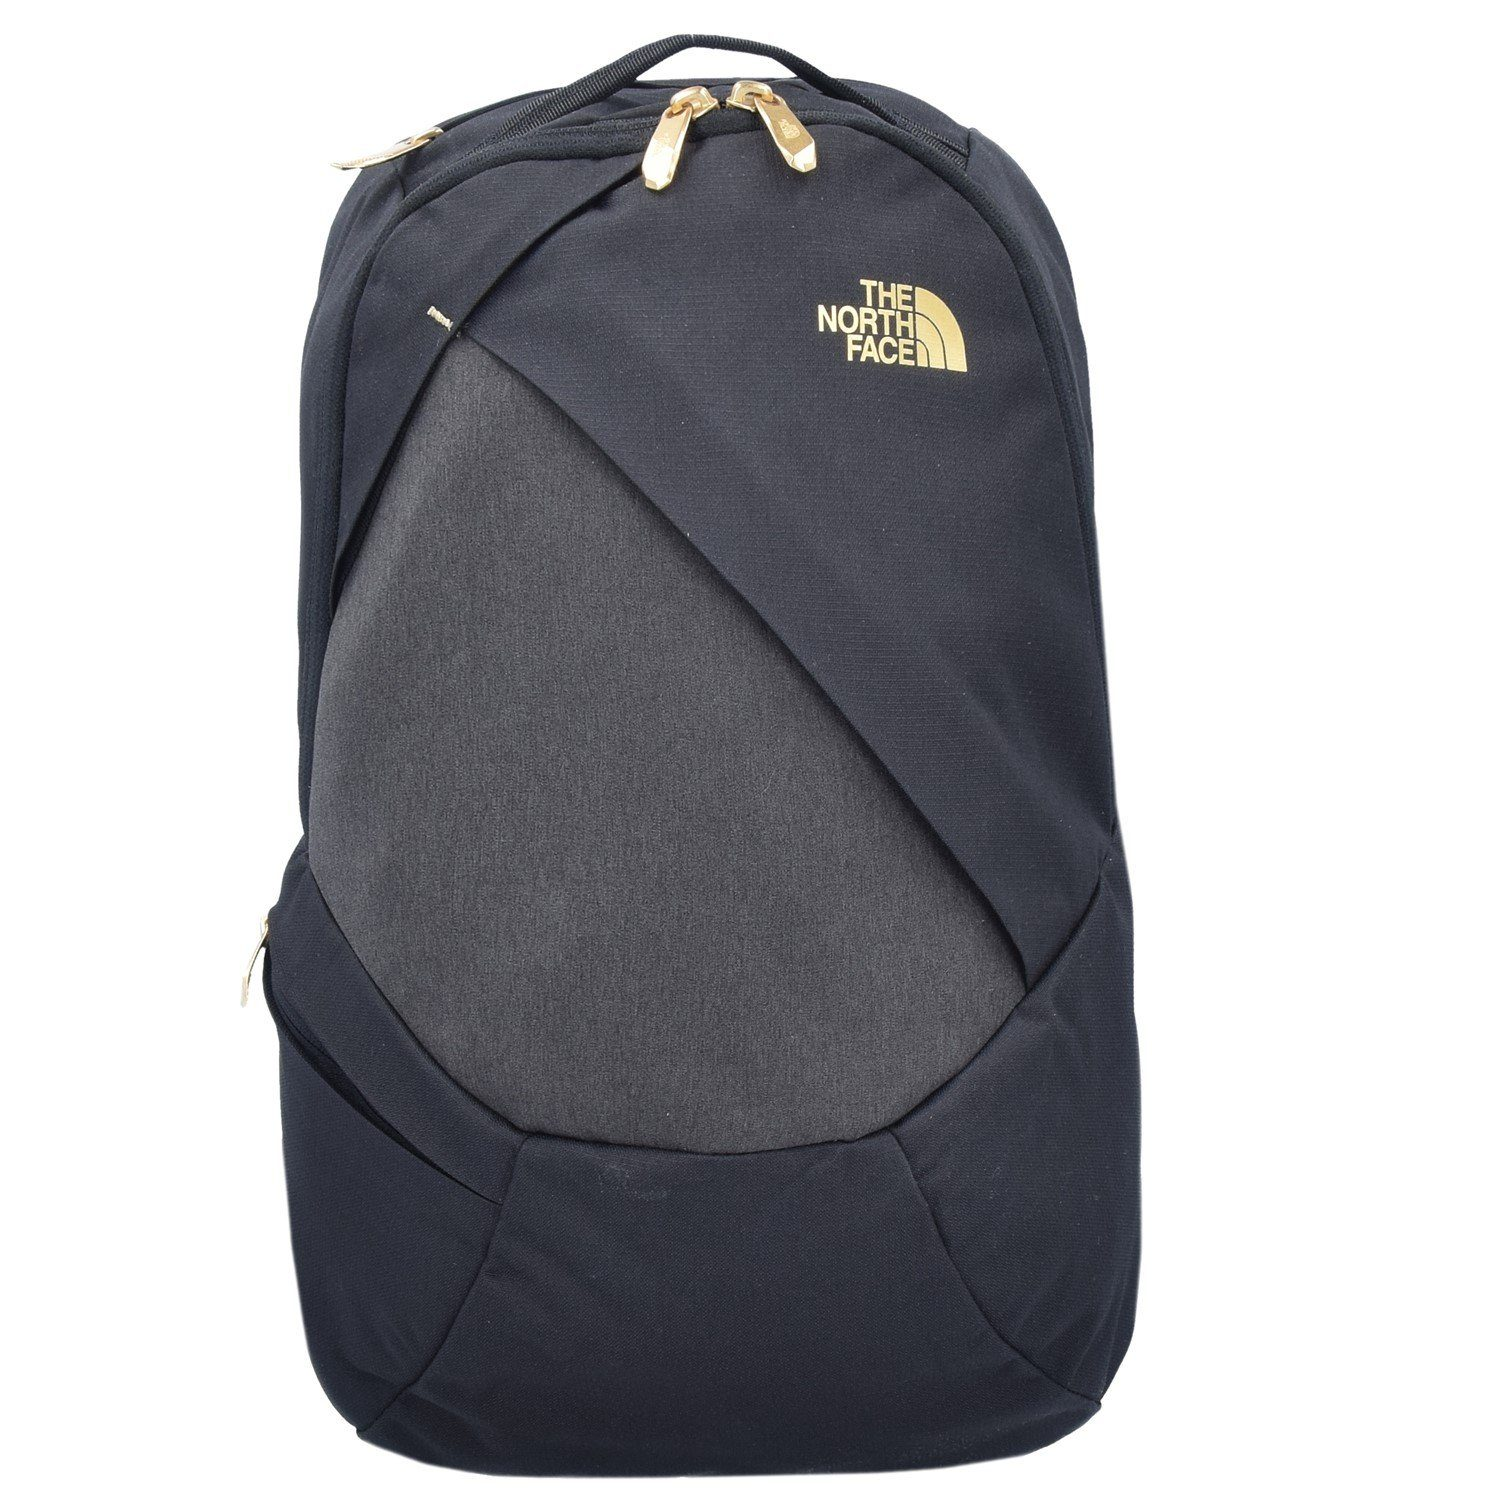 The North Face The North Face W Electra Rucksack 41 cm Laptopfach